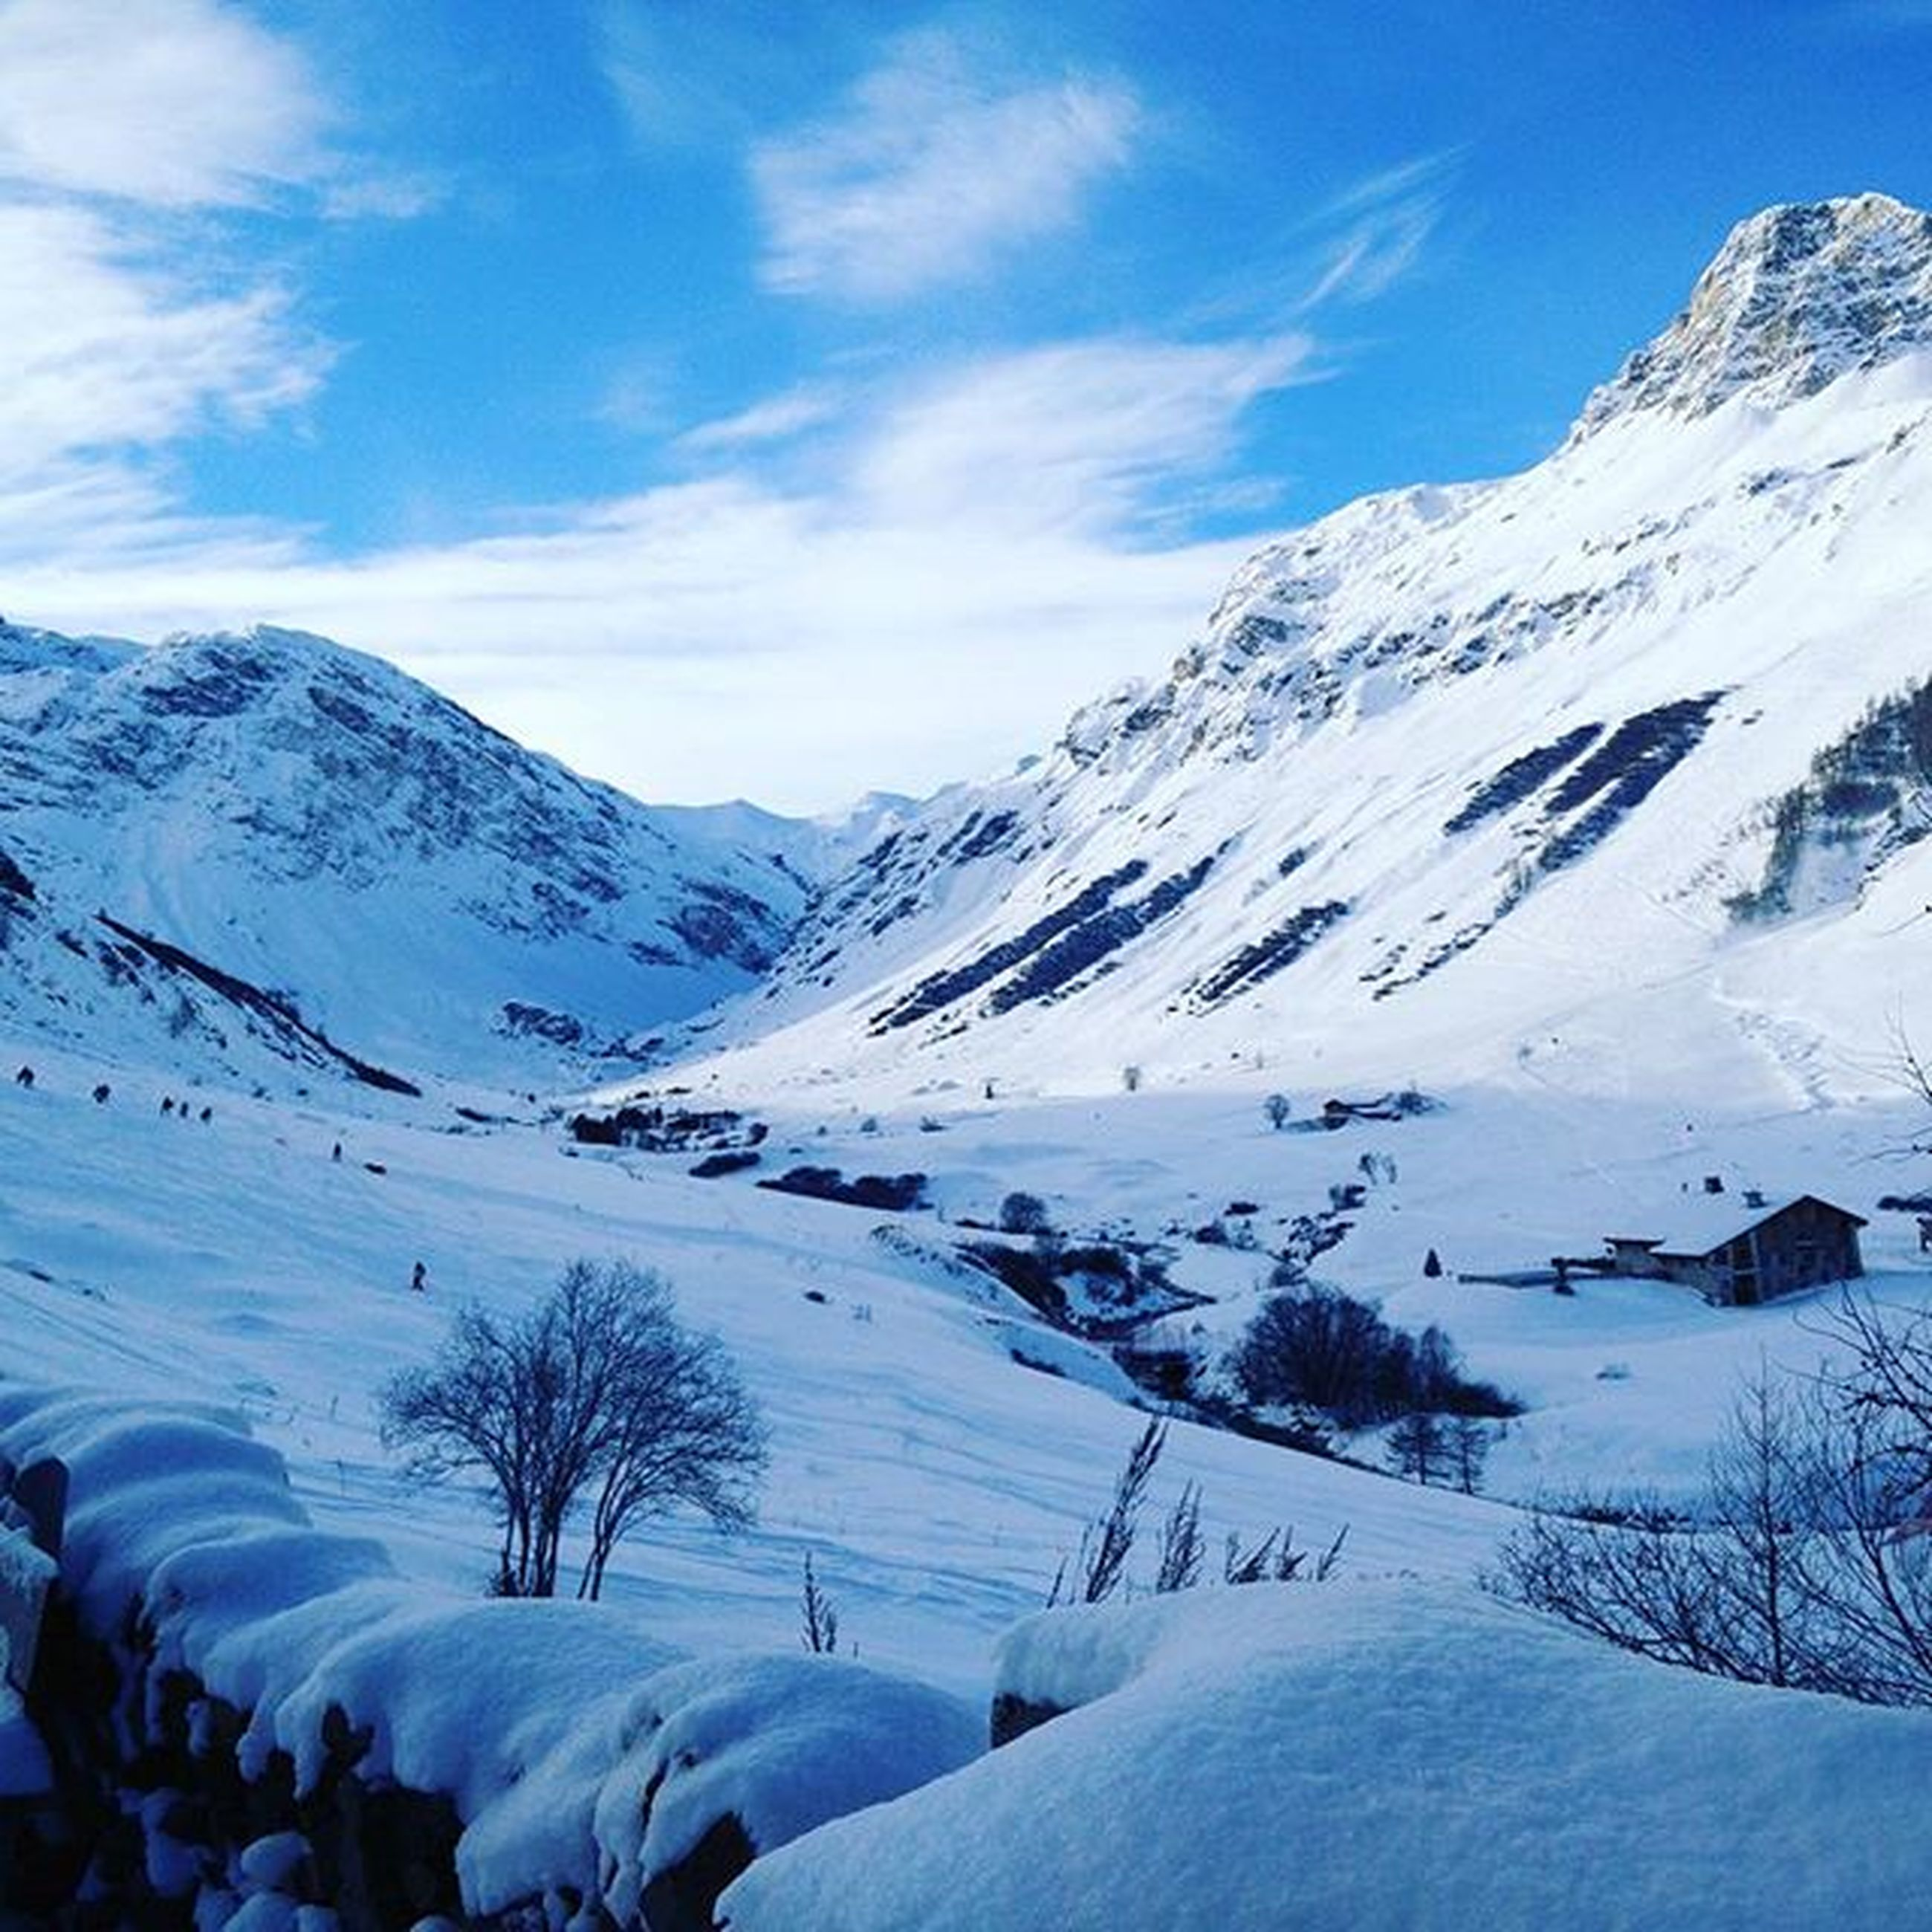 winter, snow, cold temperature, season, mountain, weather, snowcapped mountain, covering, mountain range, tranquil scene, beauty in nature, landscape, scenics, tranquility, white color, nature, frozen, sky, covered, snow covered